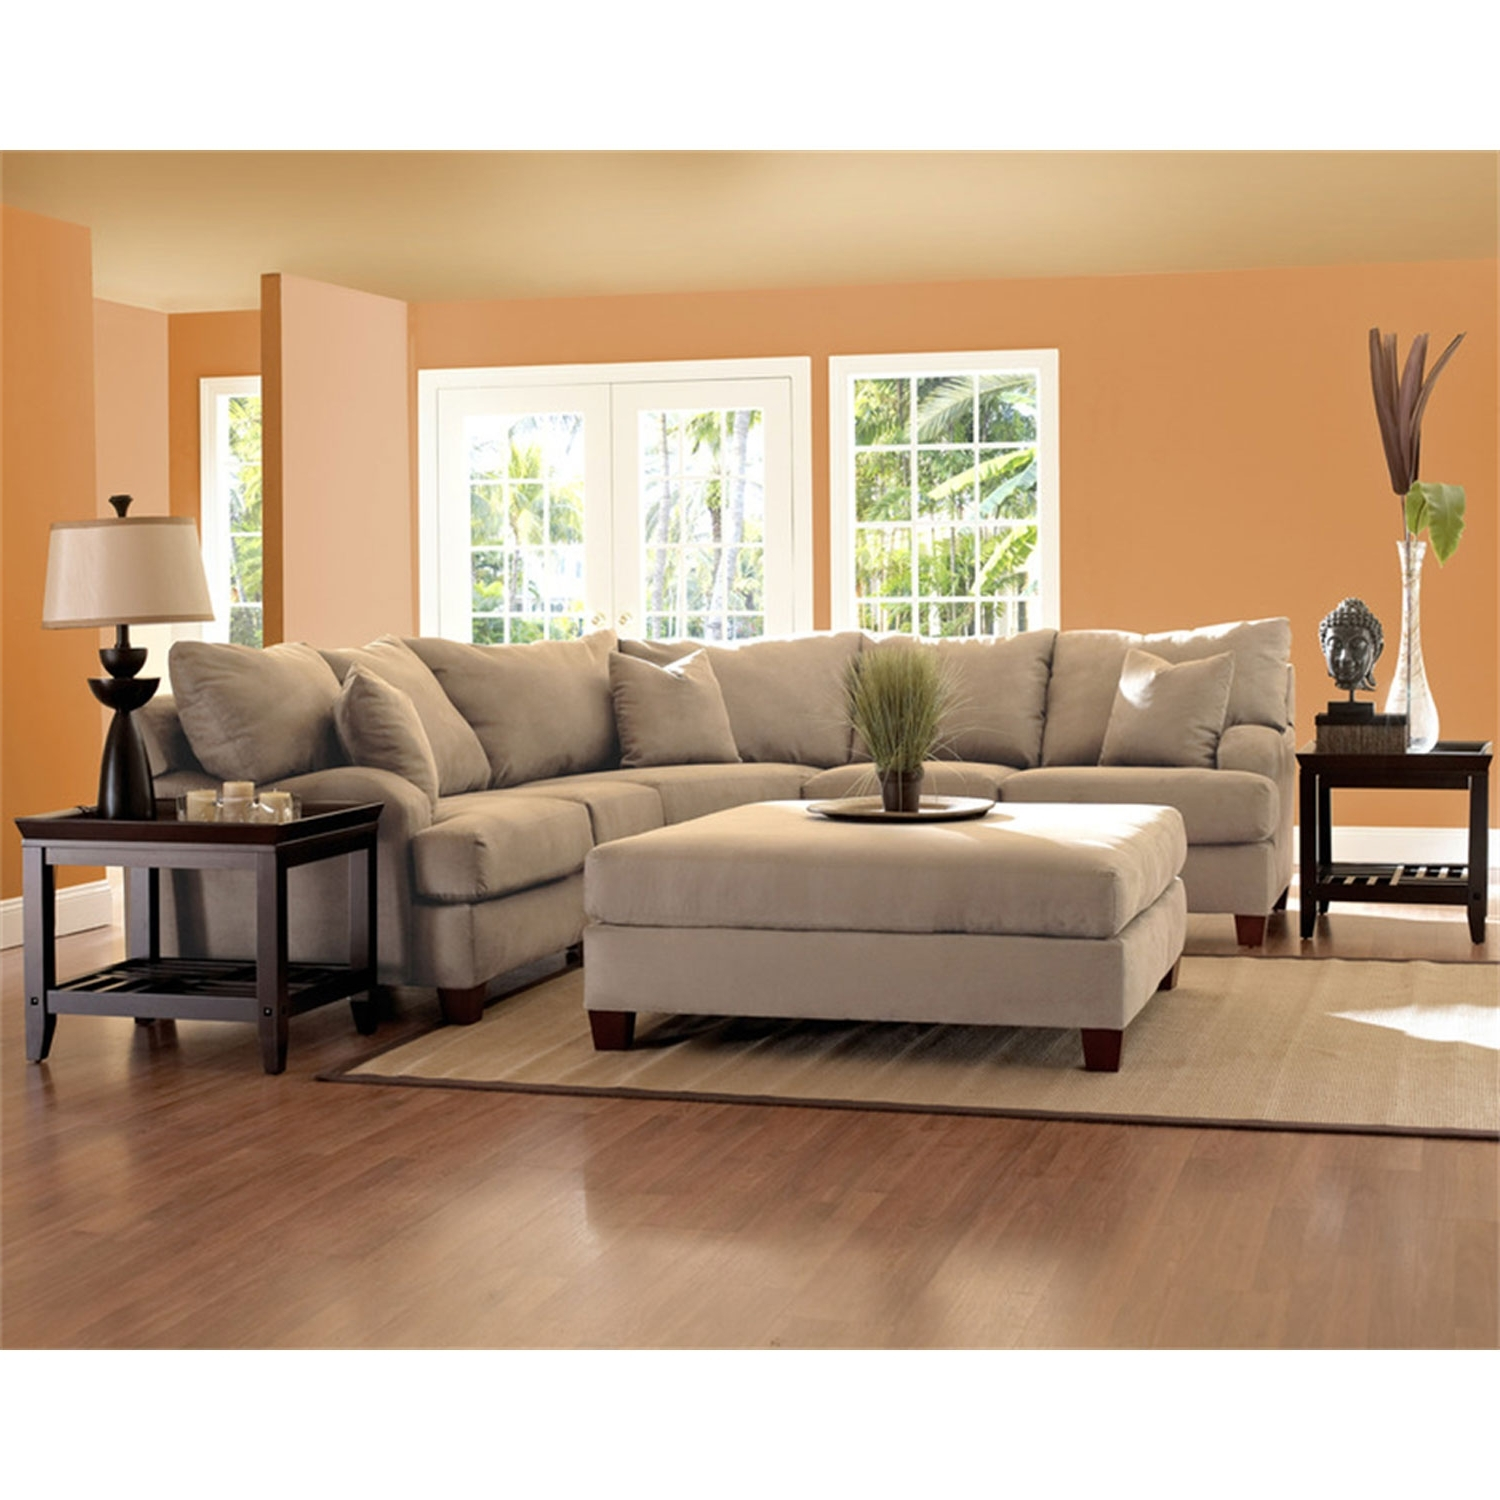 Trendy Canyon Beige Sectional Sectional Sofas Sofas & Sectionals Living With Camel Sectional Sofas (View 19 of 20)